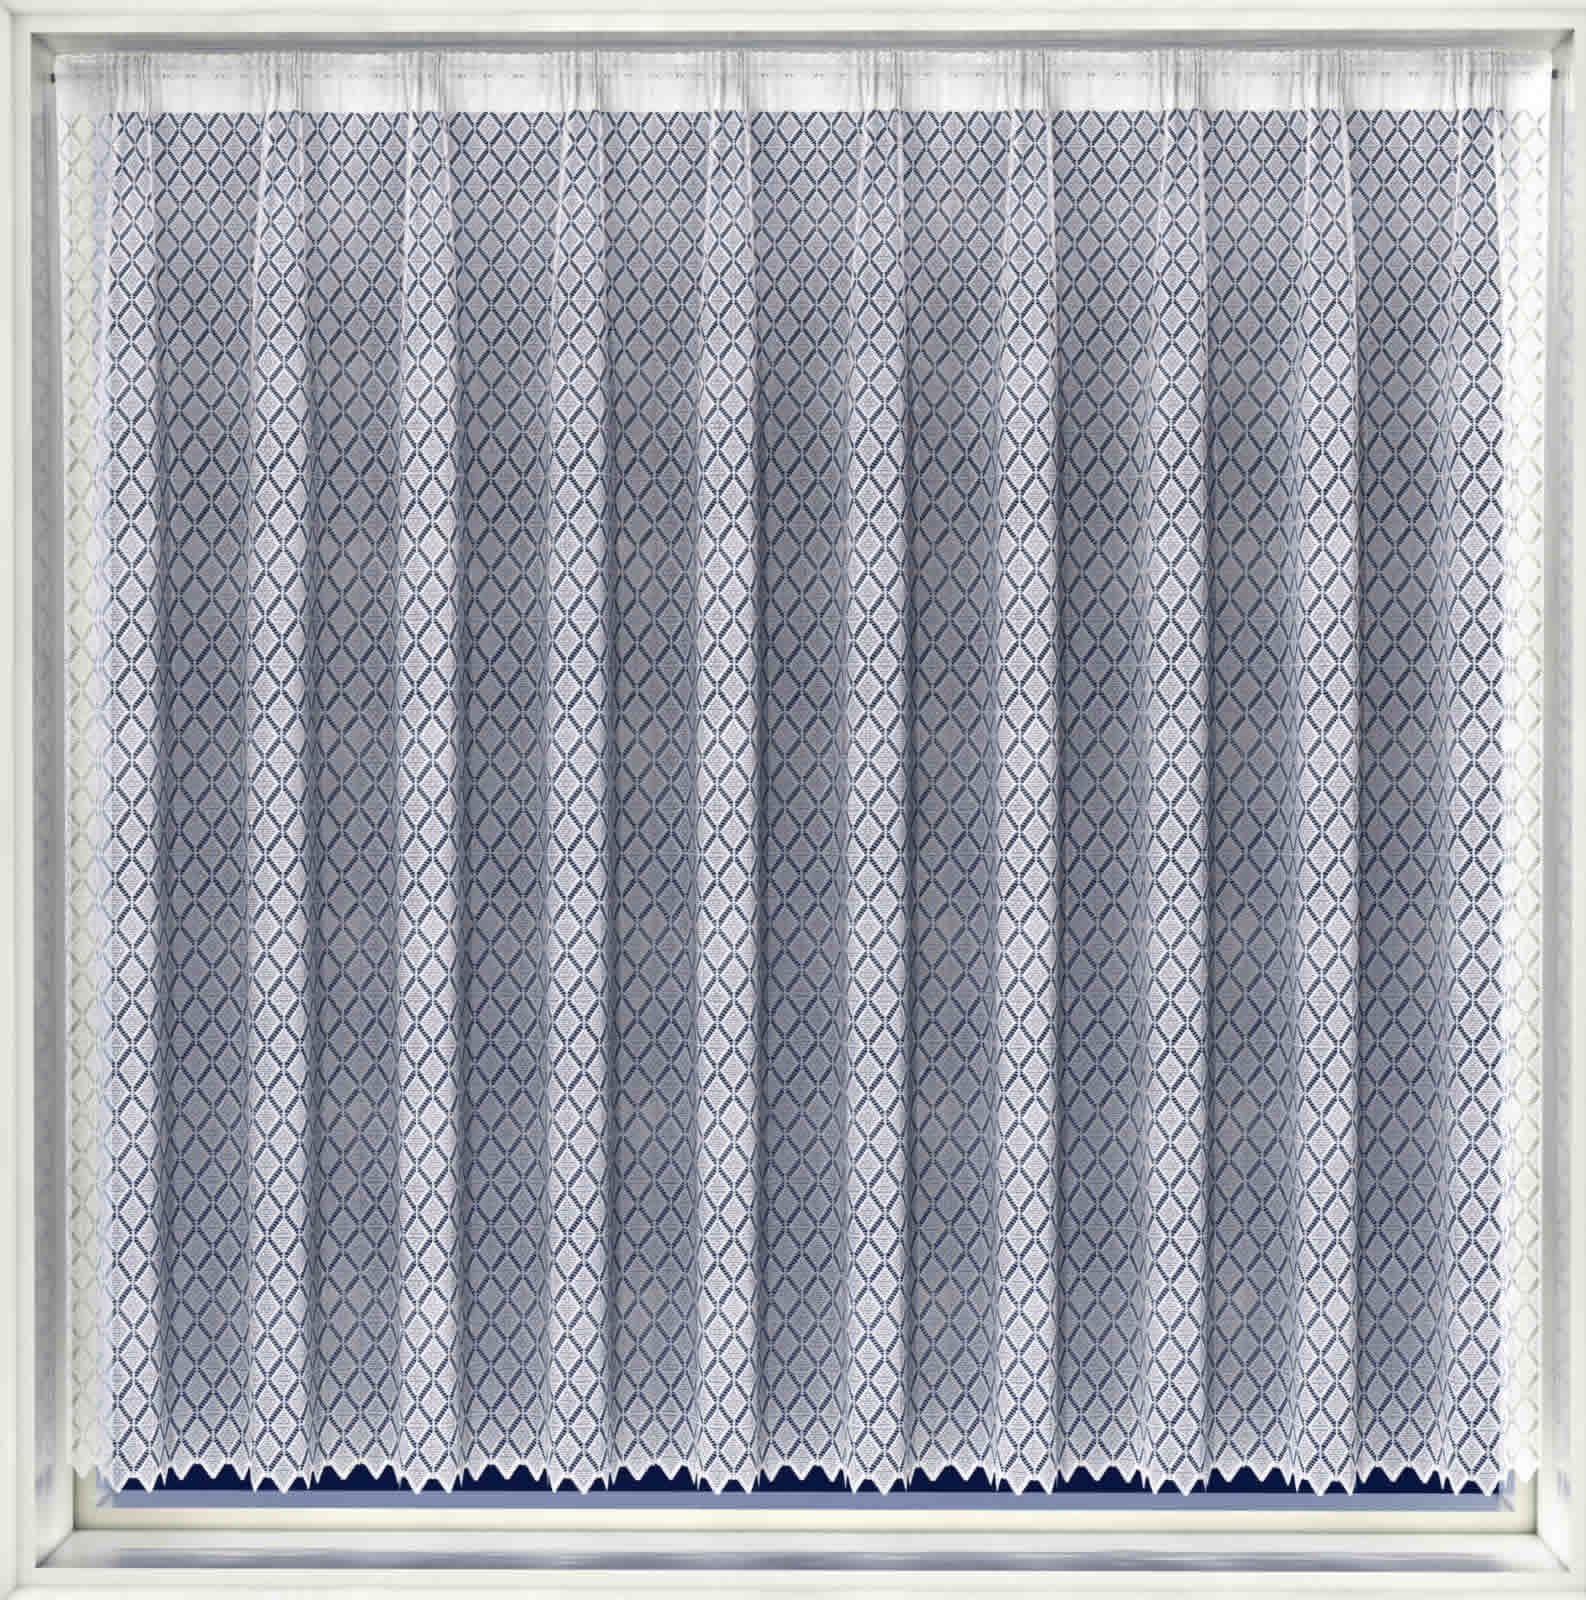 Fishnet Curtains Net Curtains White Lace Curtain Nets